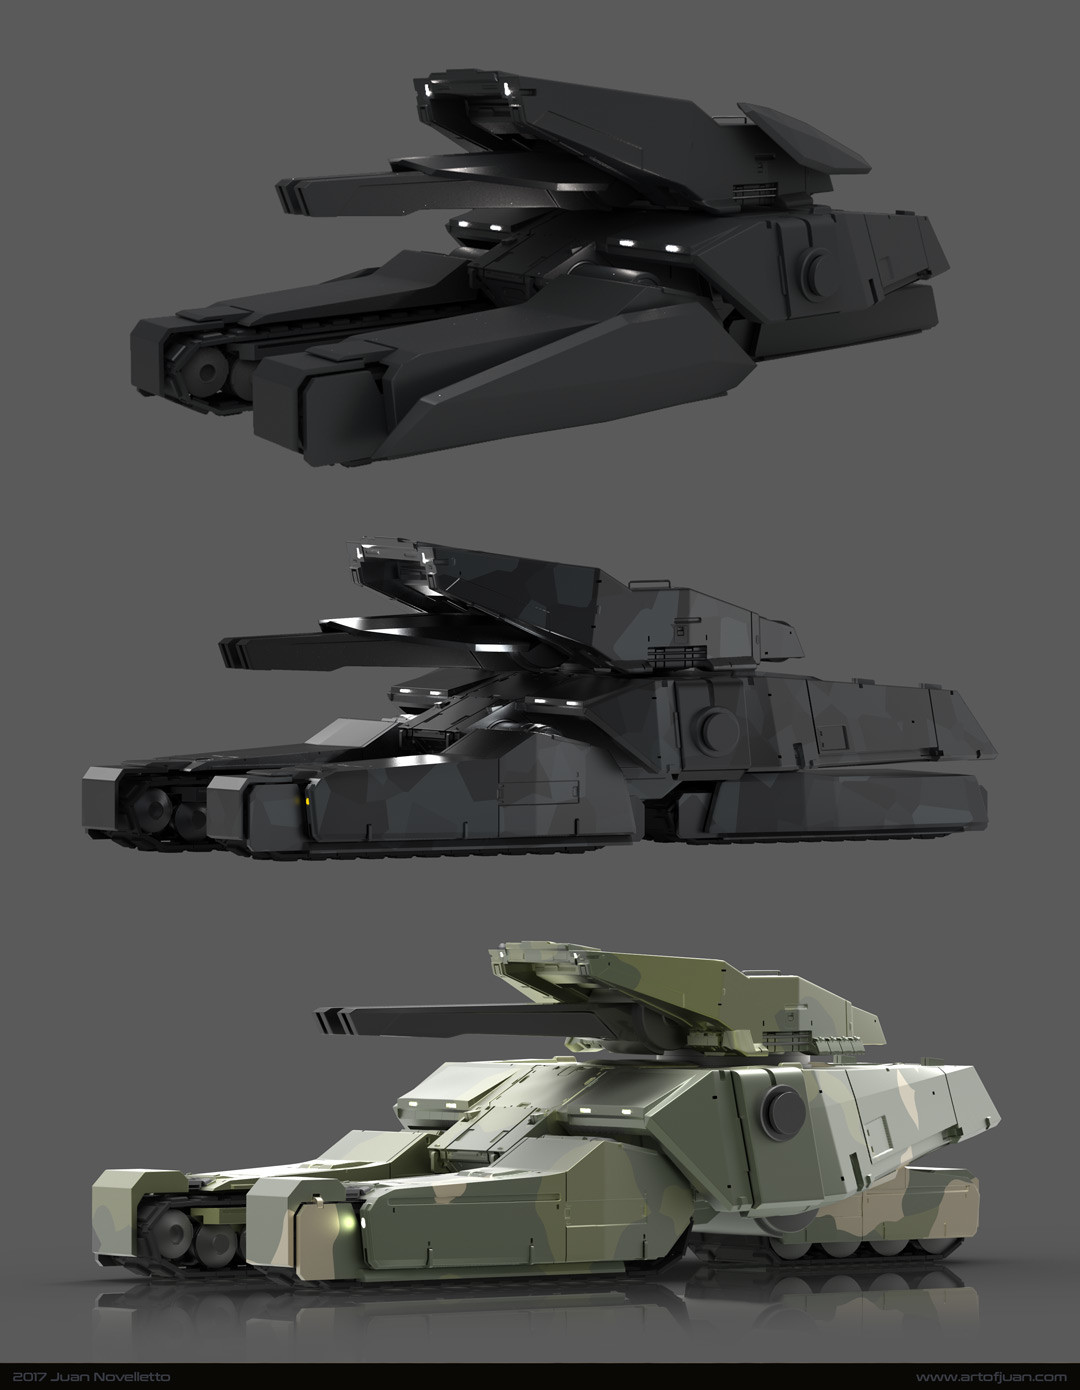 Juan novelletto tank06 earlyversion